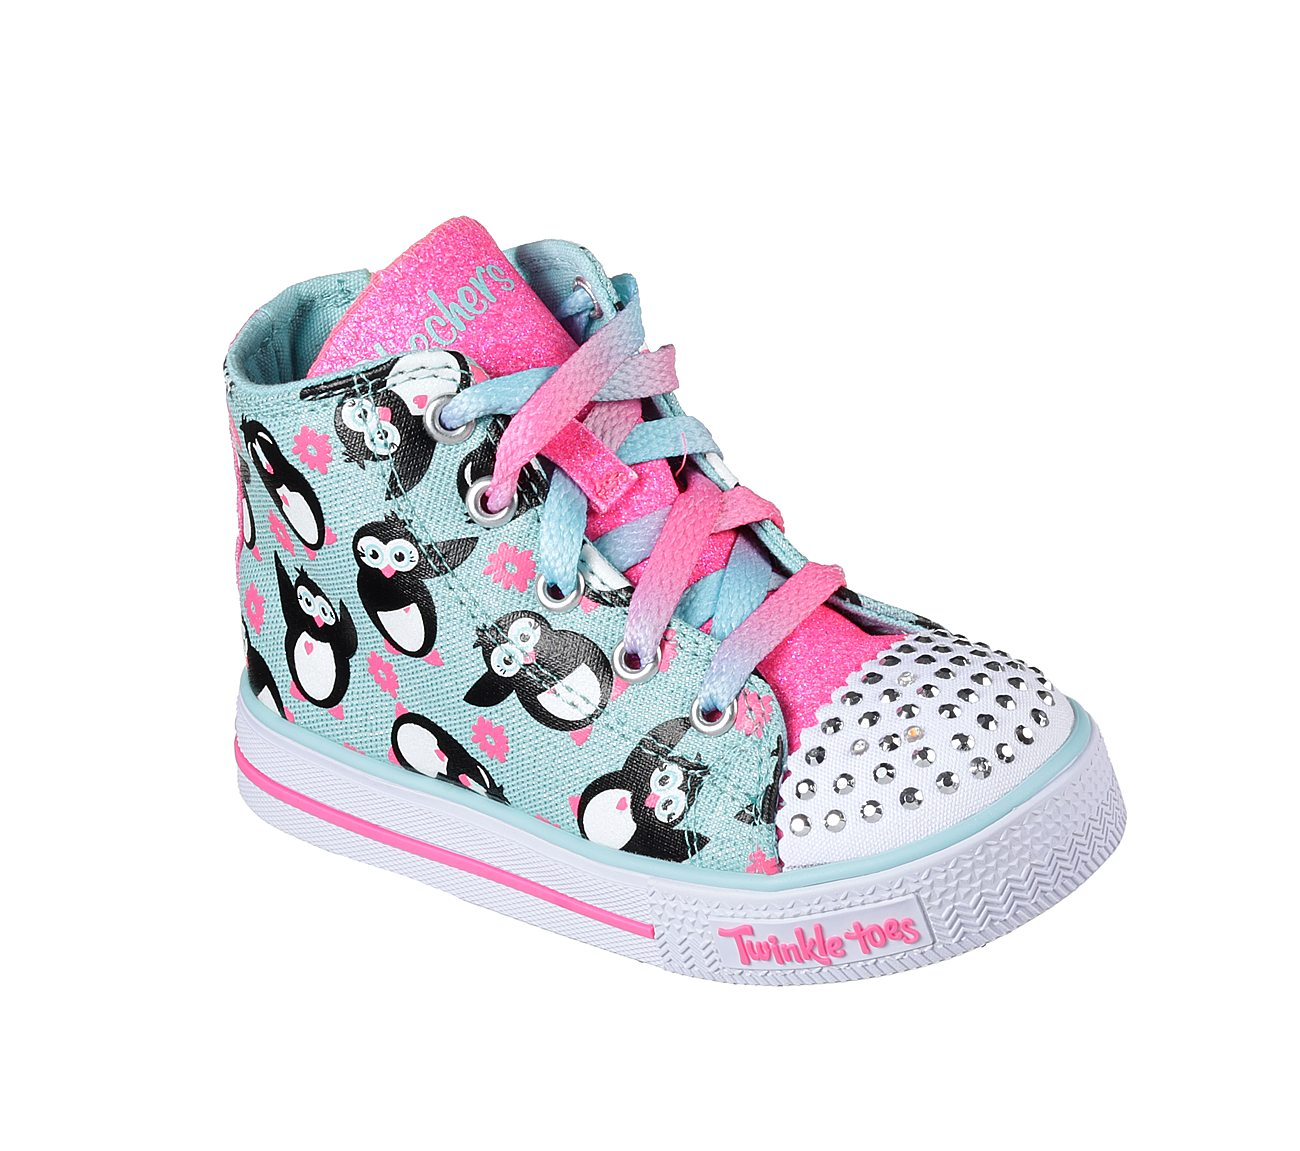 Skechers Twinkle Toes Shuffles Cheetah Print Girls Kids